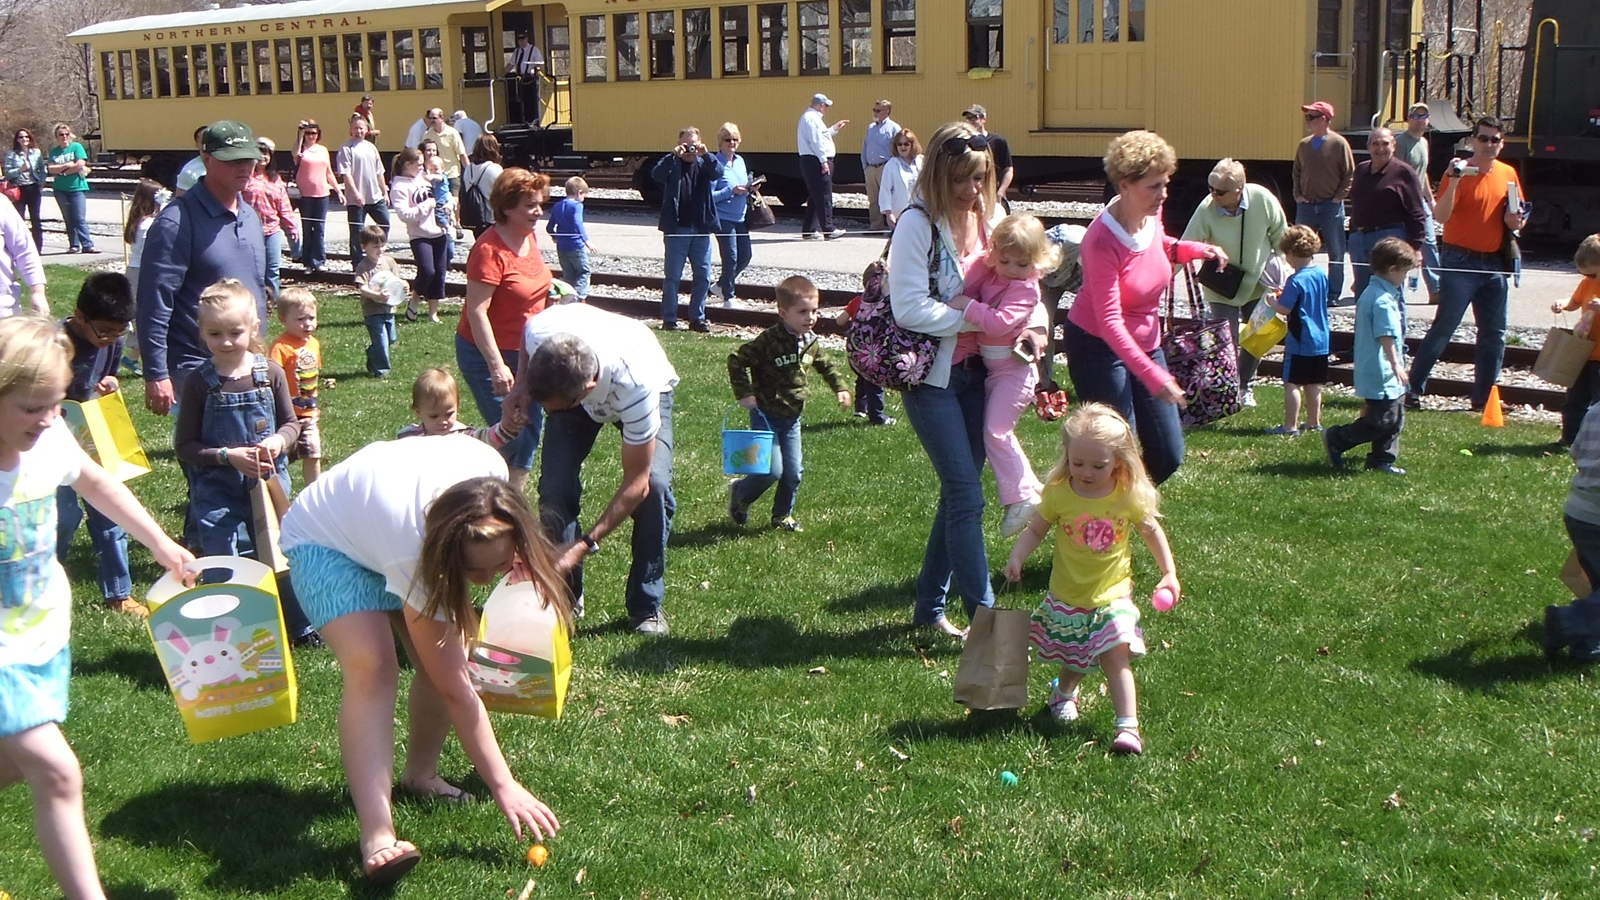 The Eggspecially Fun Bunny Run even includes an Easter egg hunt. Photo courtesy of Steam Into History.